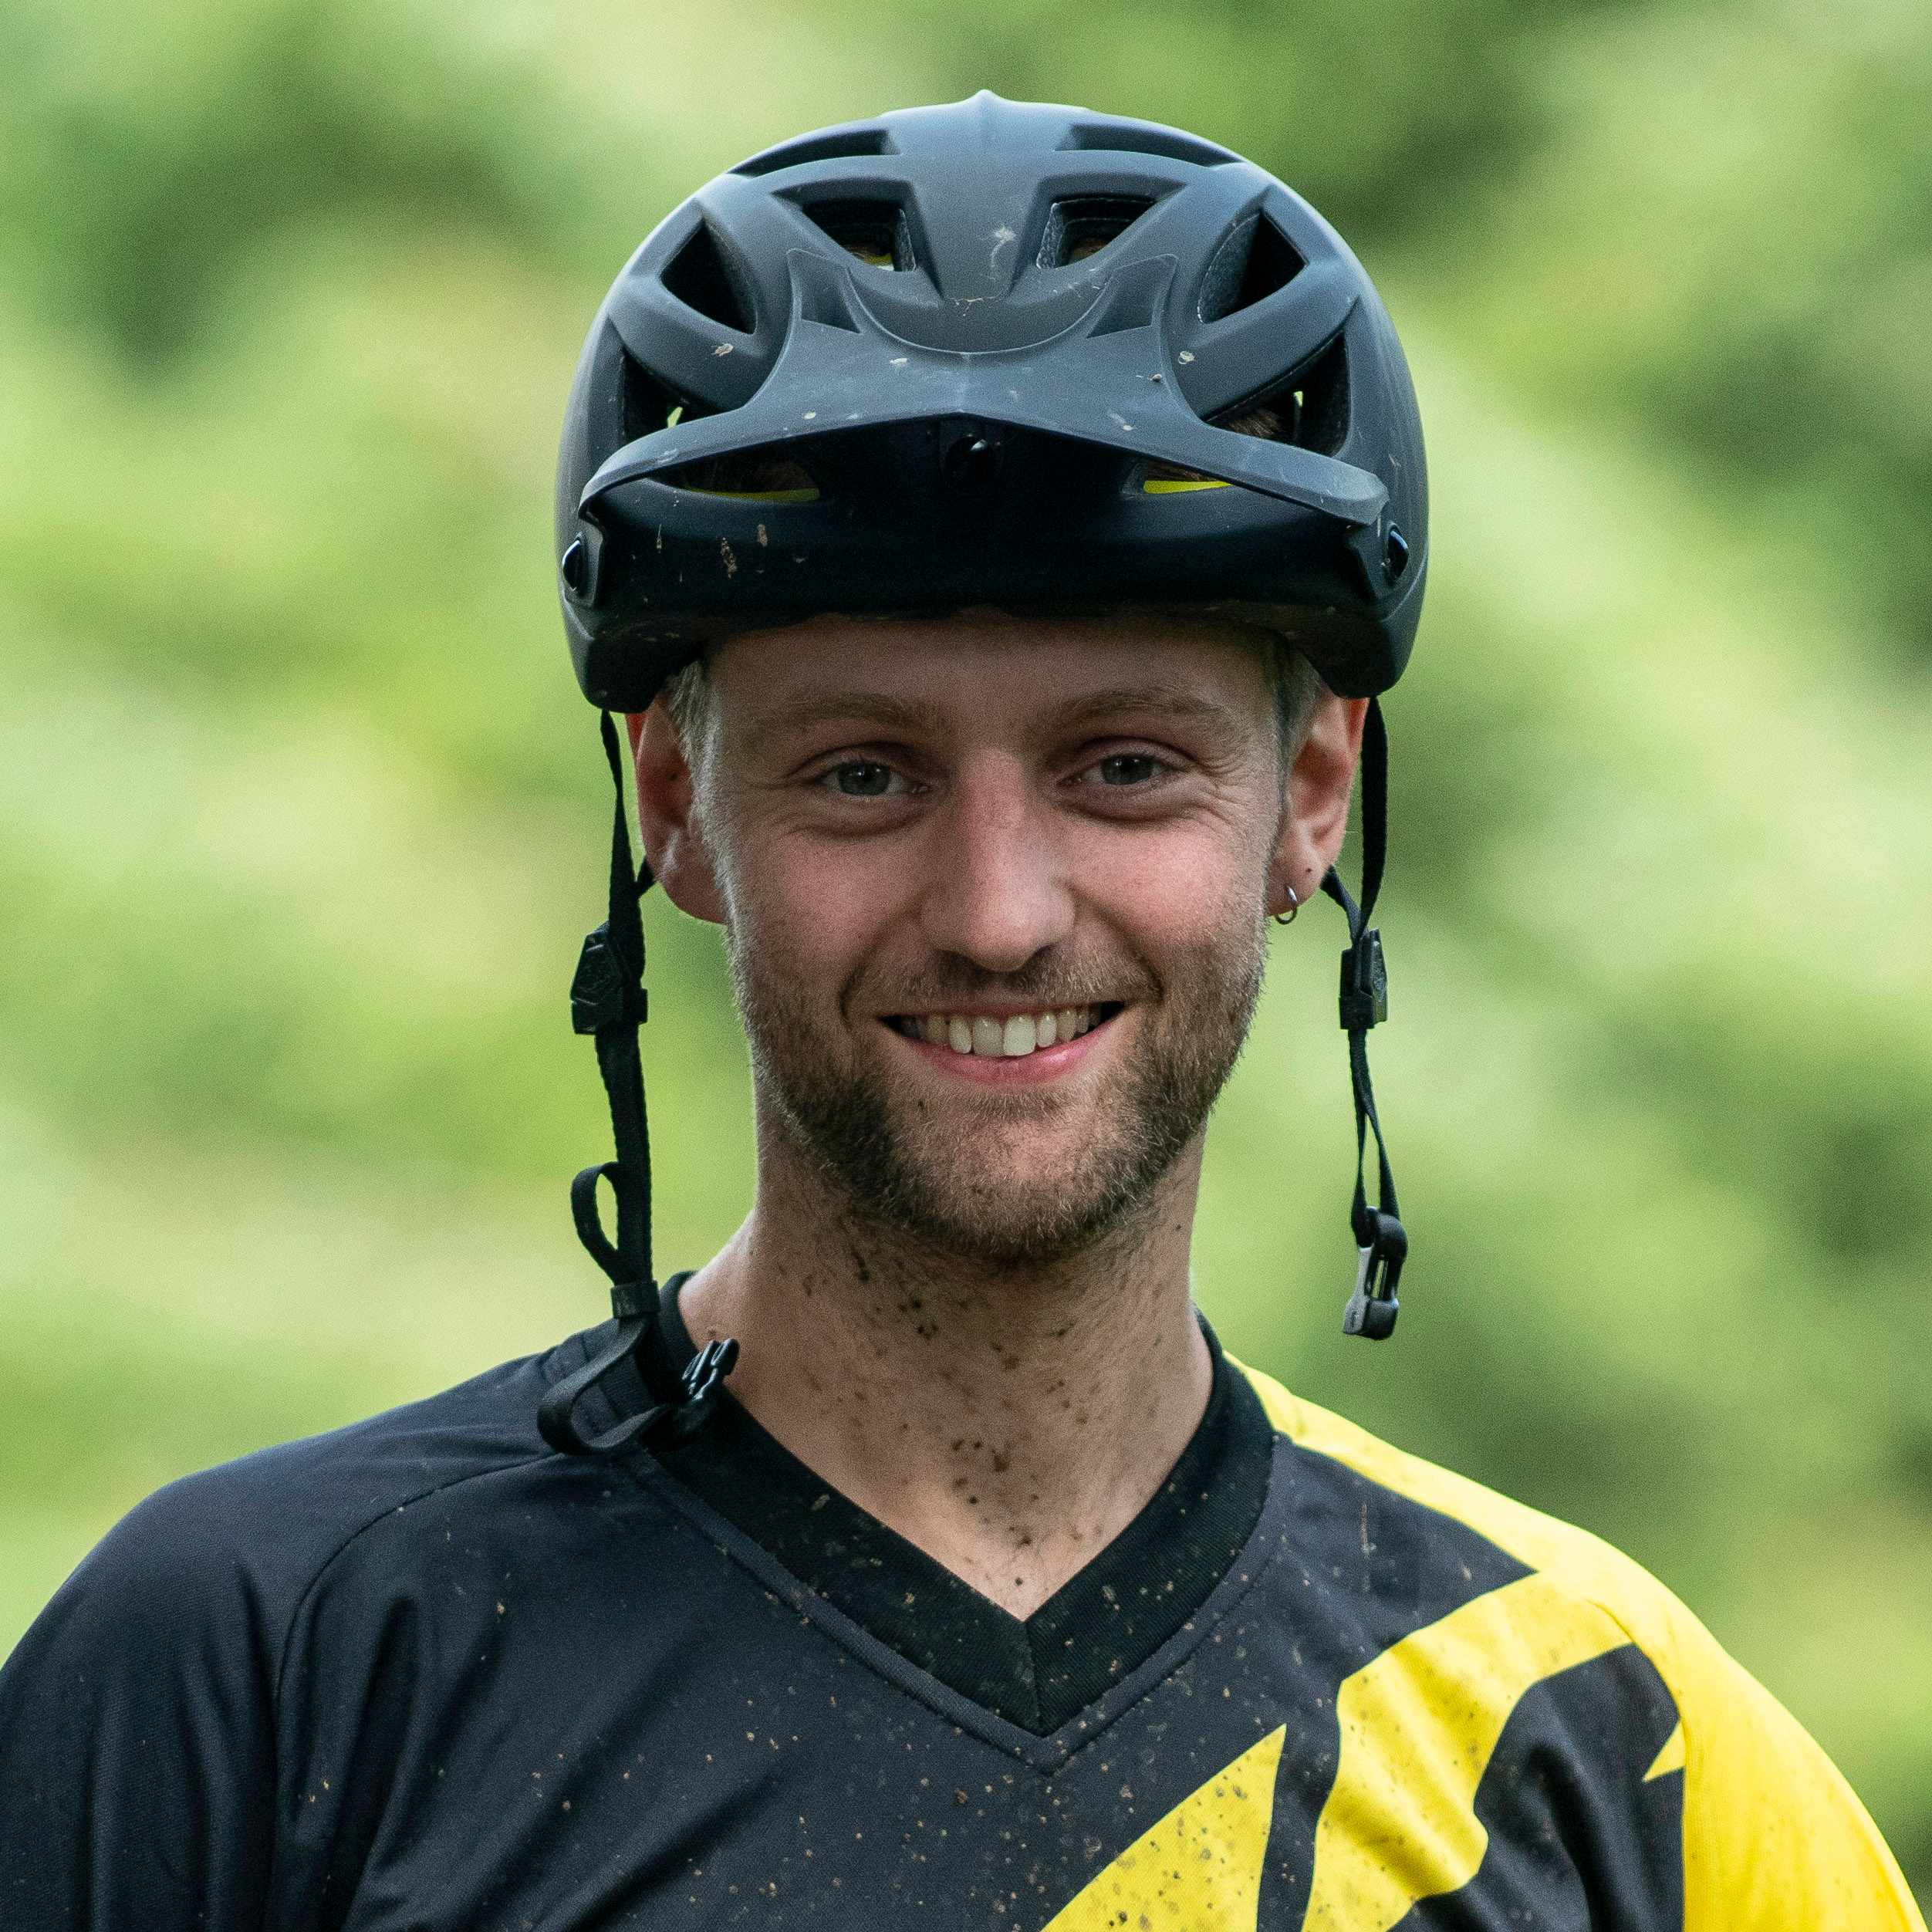 24.07.18. 